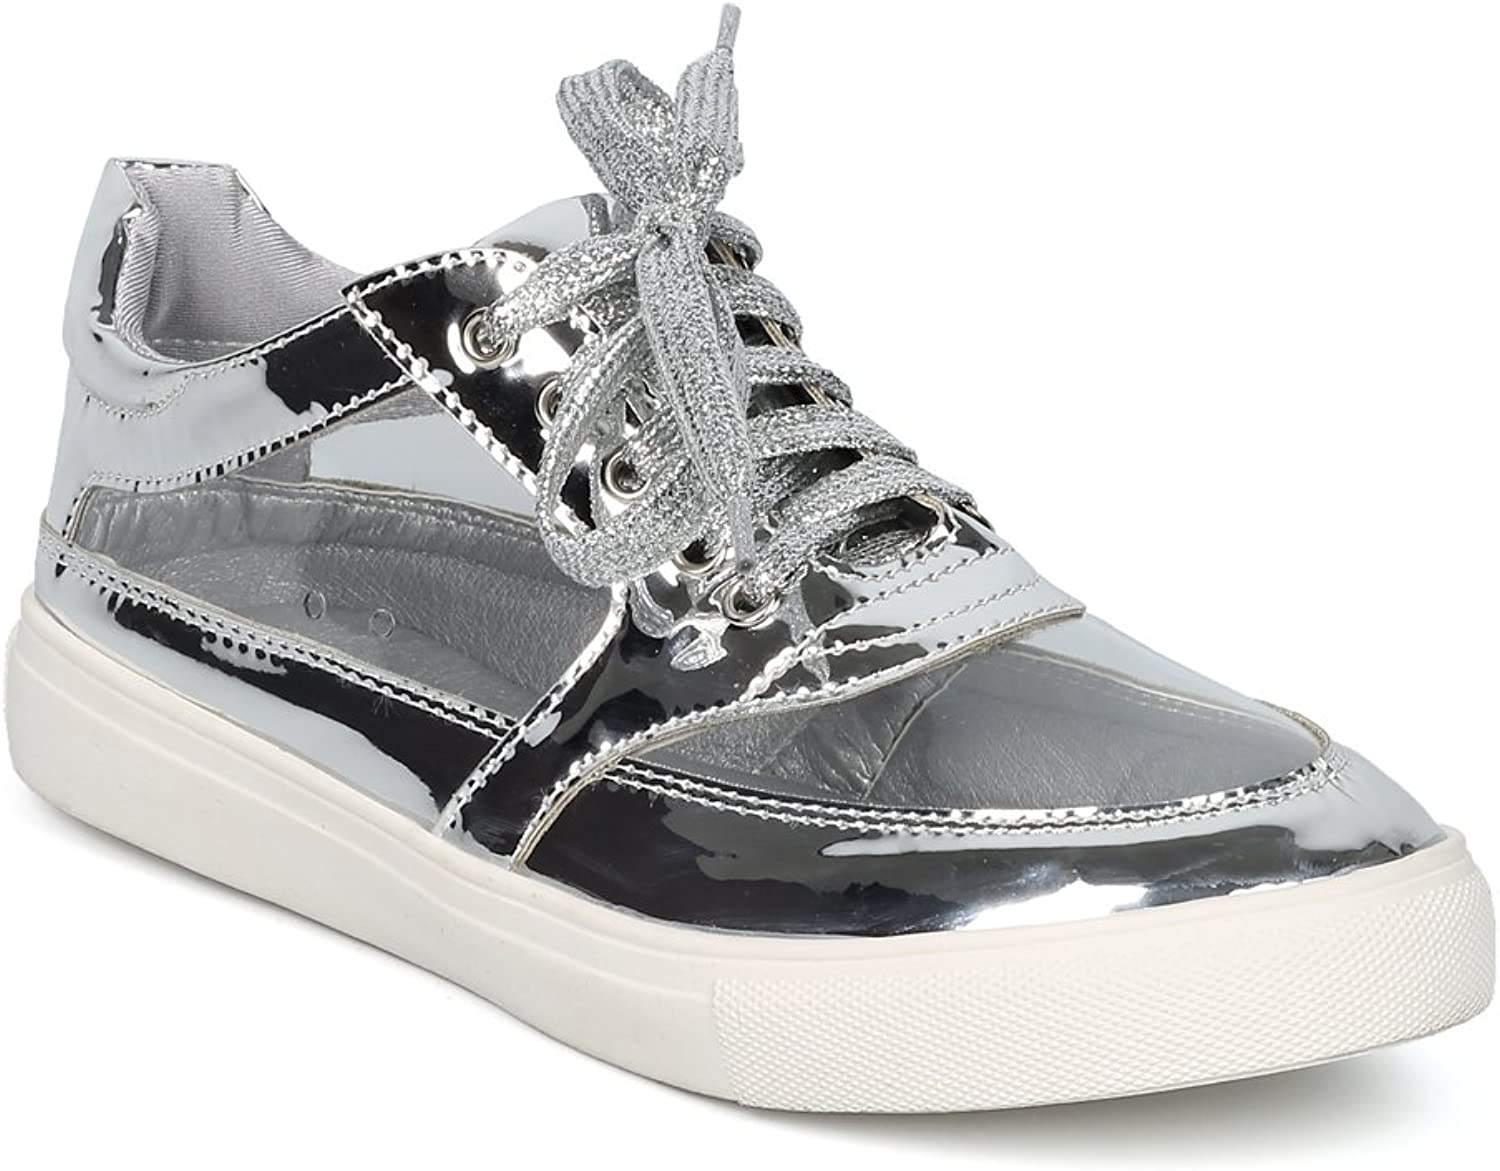 Alrisco Women Perspex Round Toe Lace Up Low Top Sneaker HC46